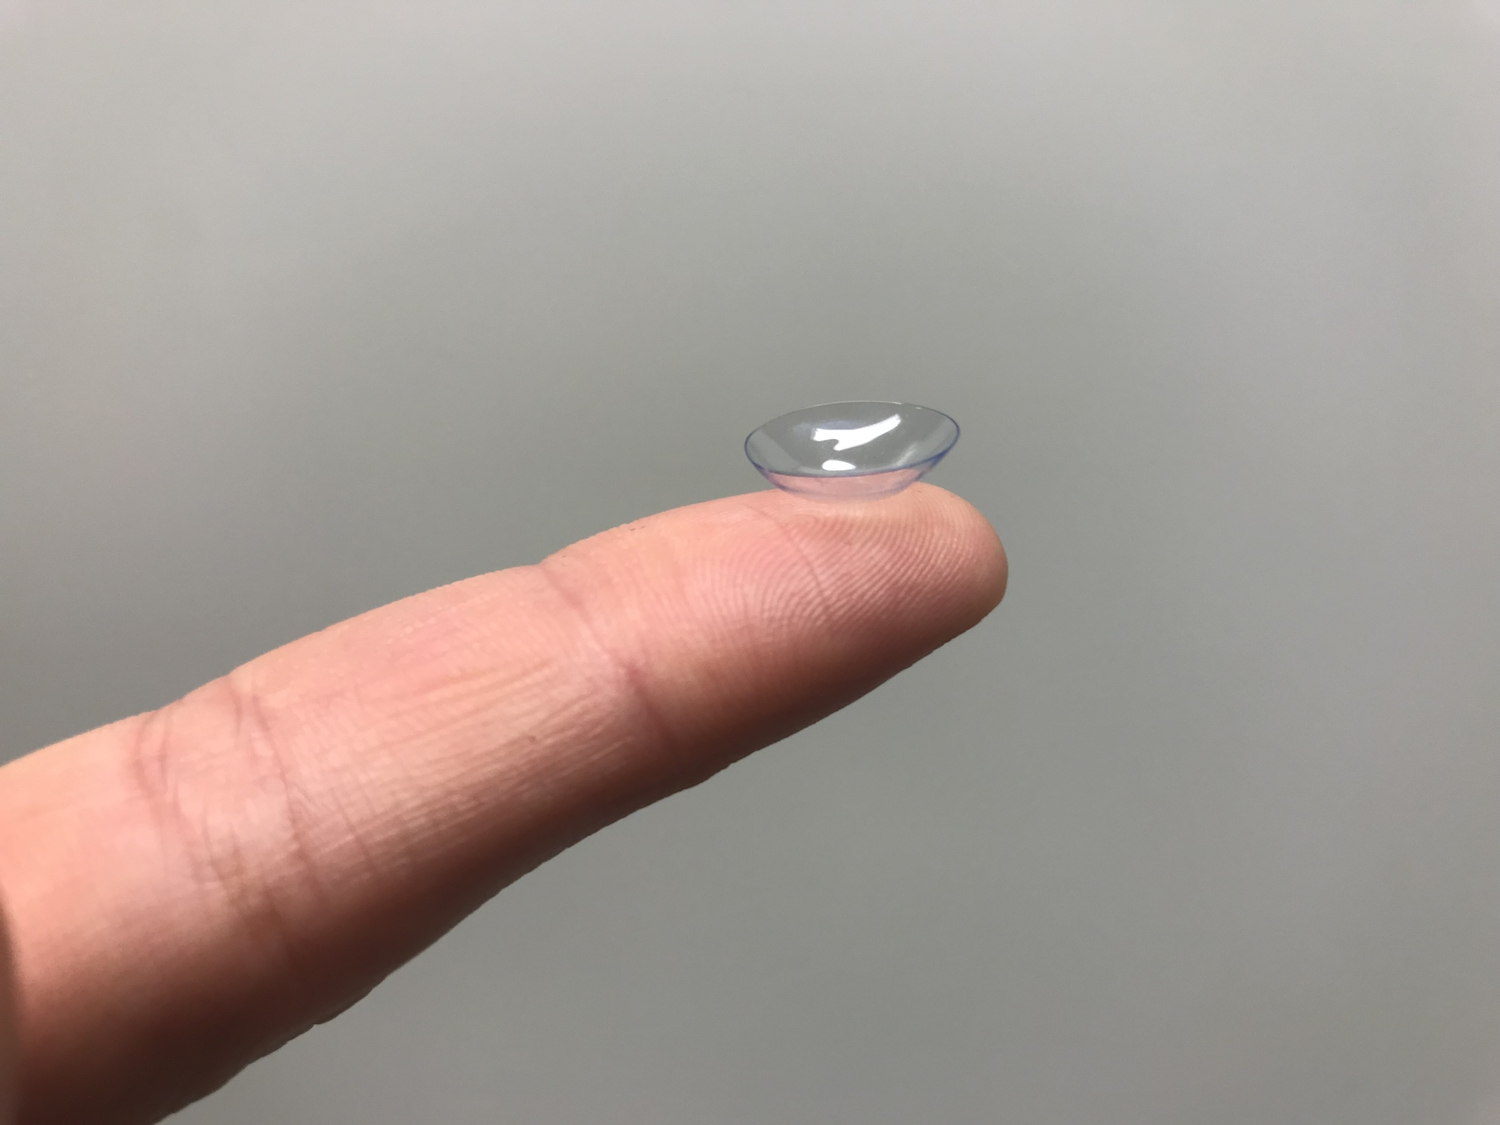 The future of contact lenses – being able to collect pupillary data?